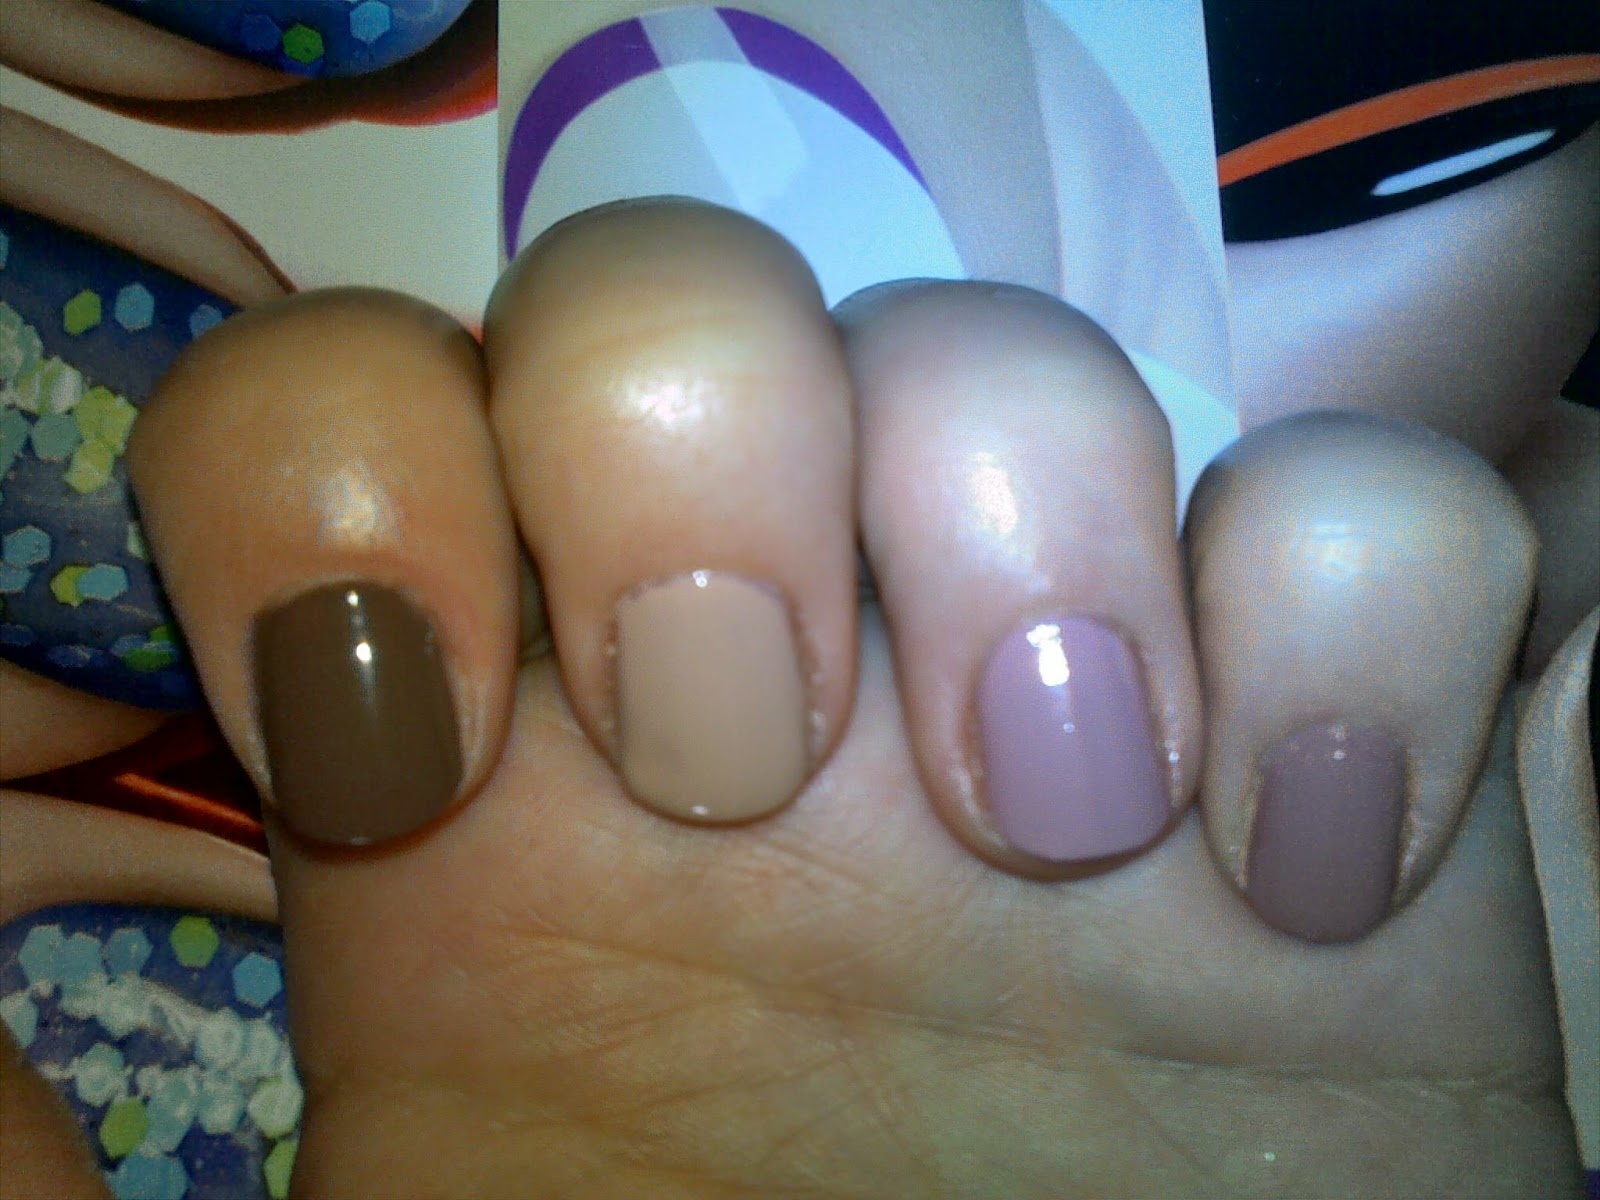 Nude nail polishes swatches from Radiant and L'oreal